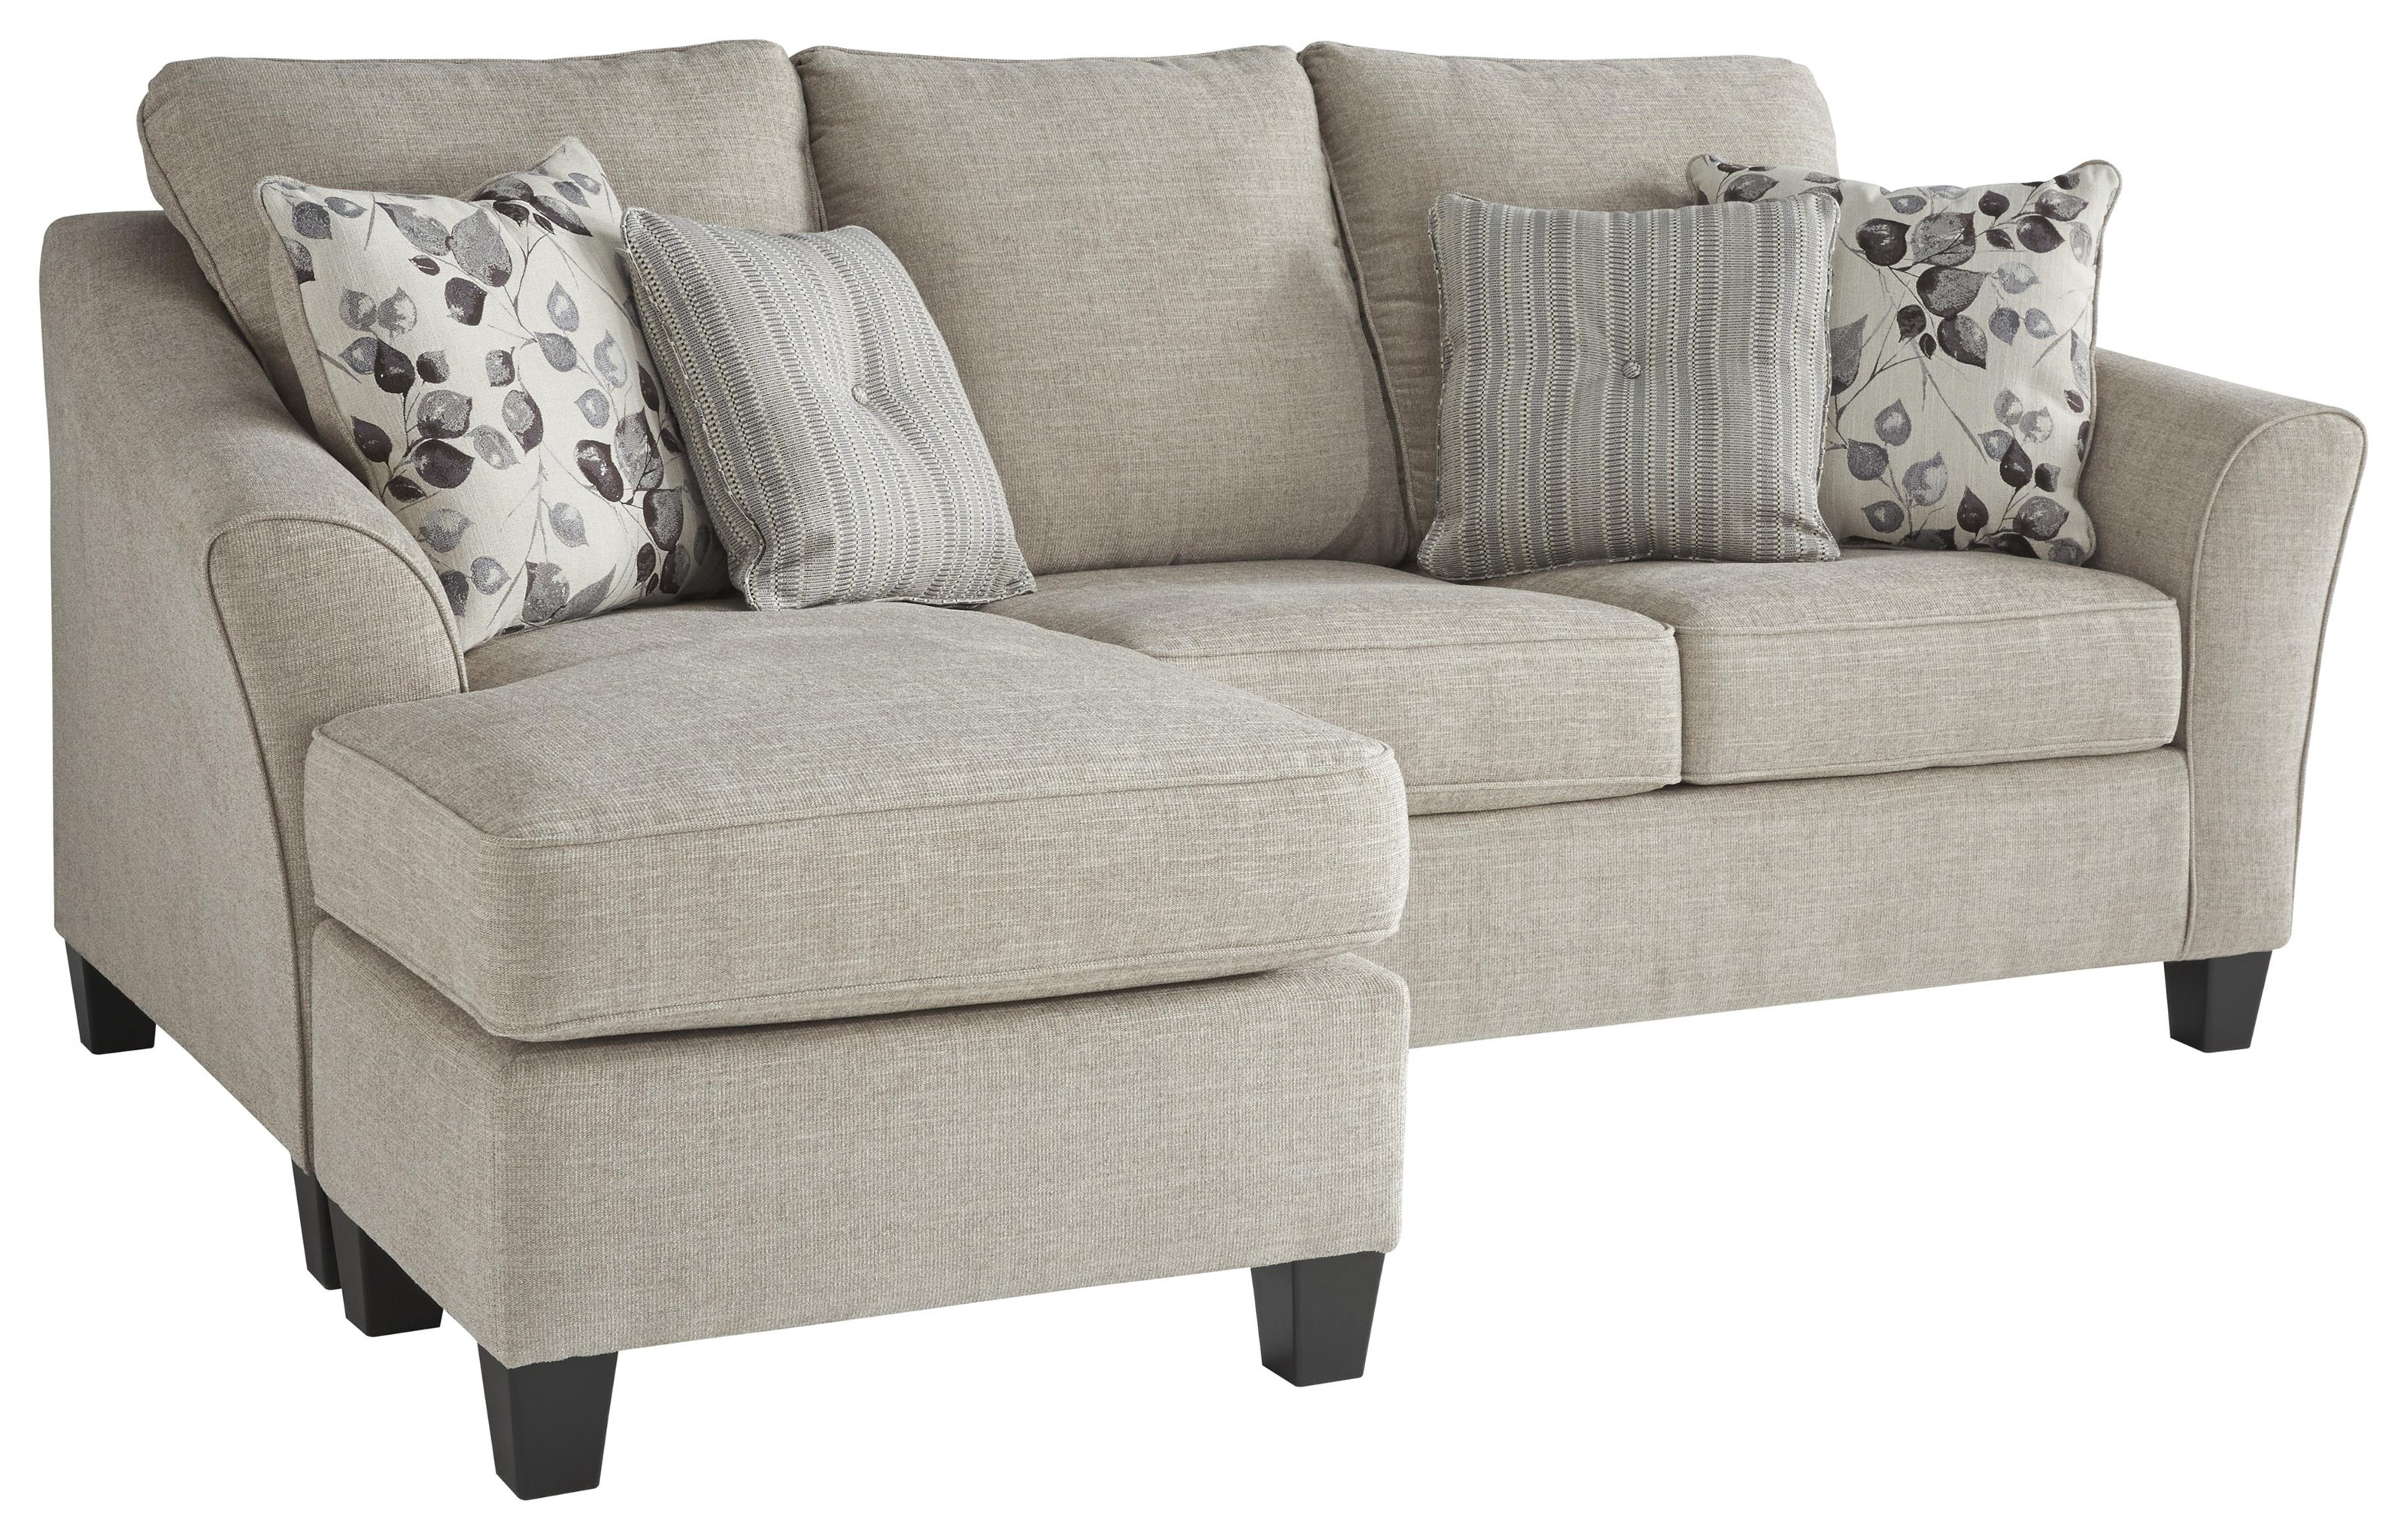 Abney Abney Sofa Chaise by Ashley at Morris Home